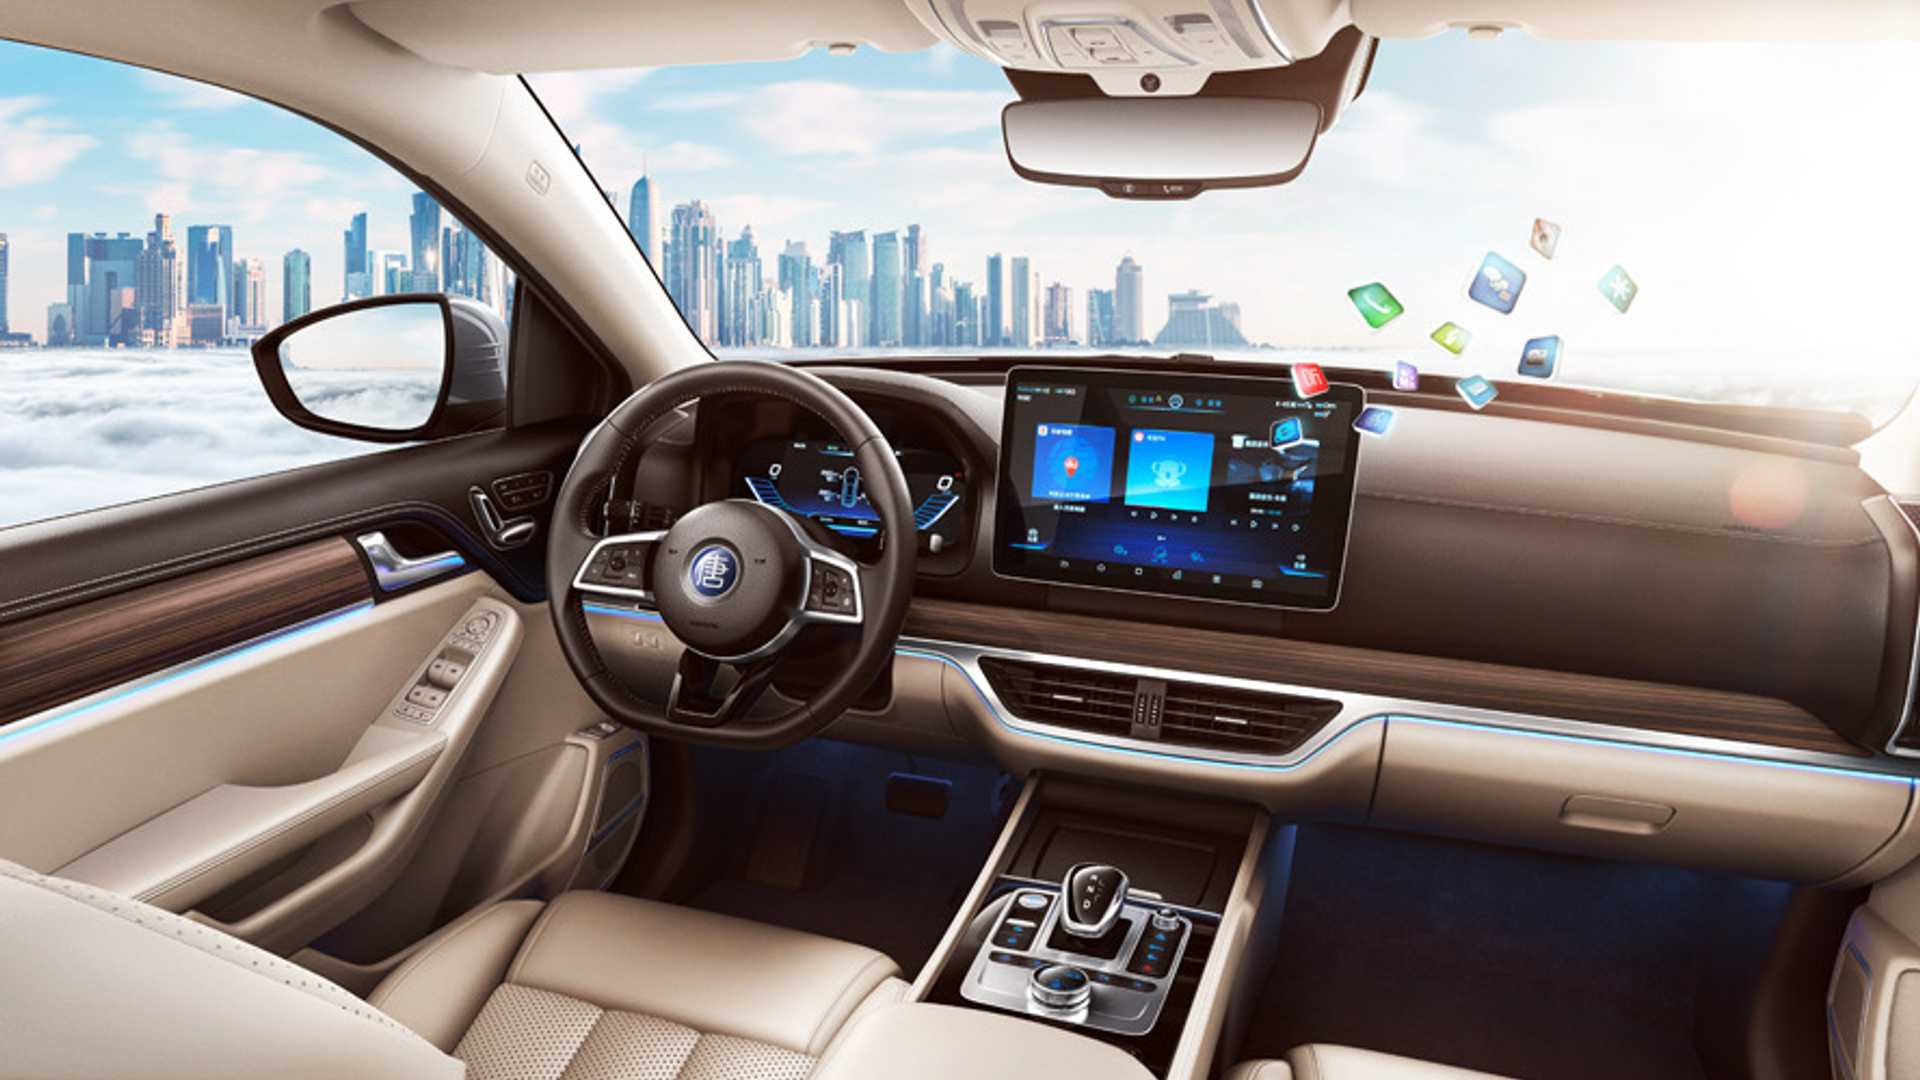 BYD-Tang-suv-electrico-interior